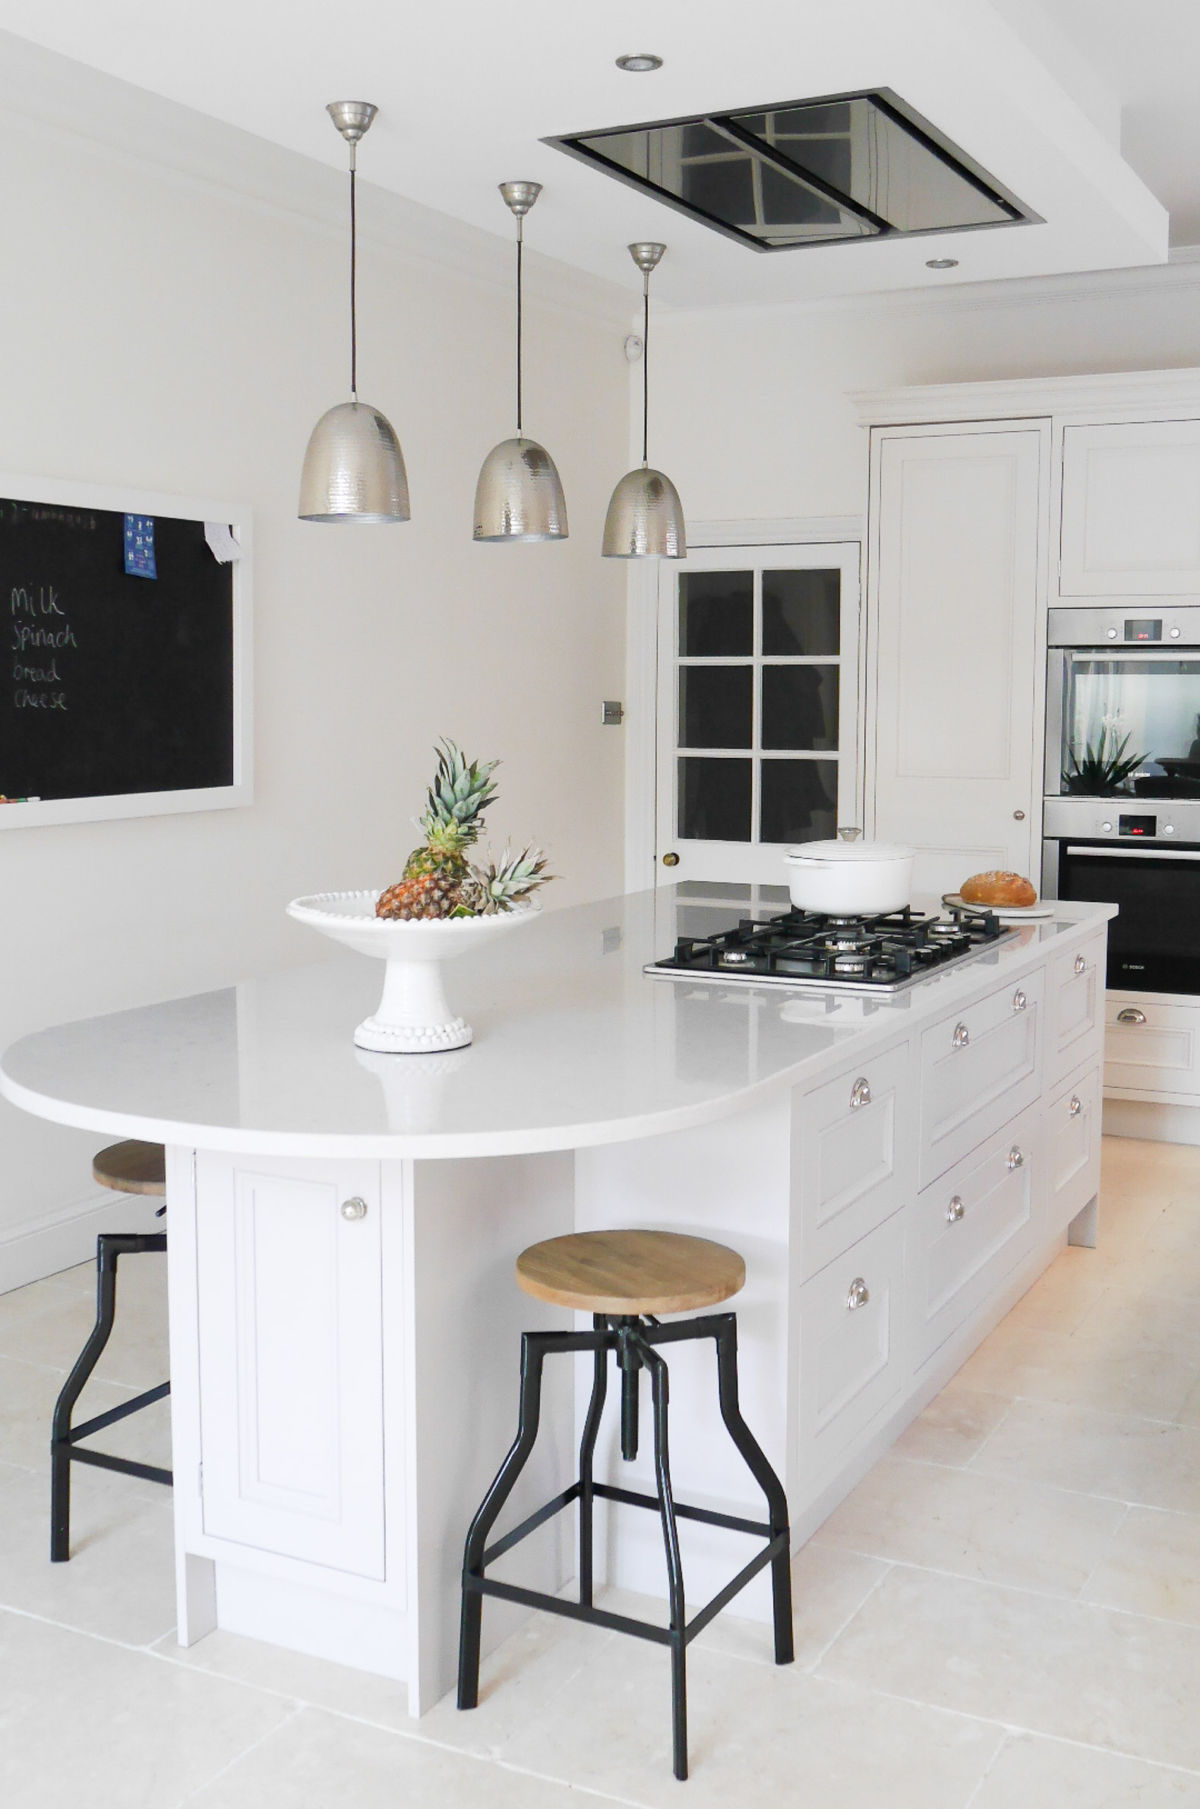 Bright white kitchen design and Scandi inspired living area